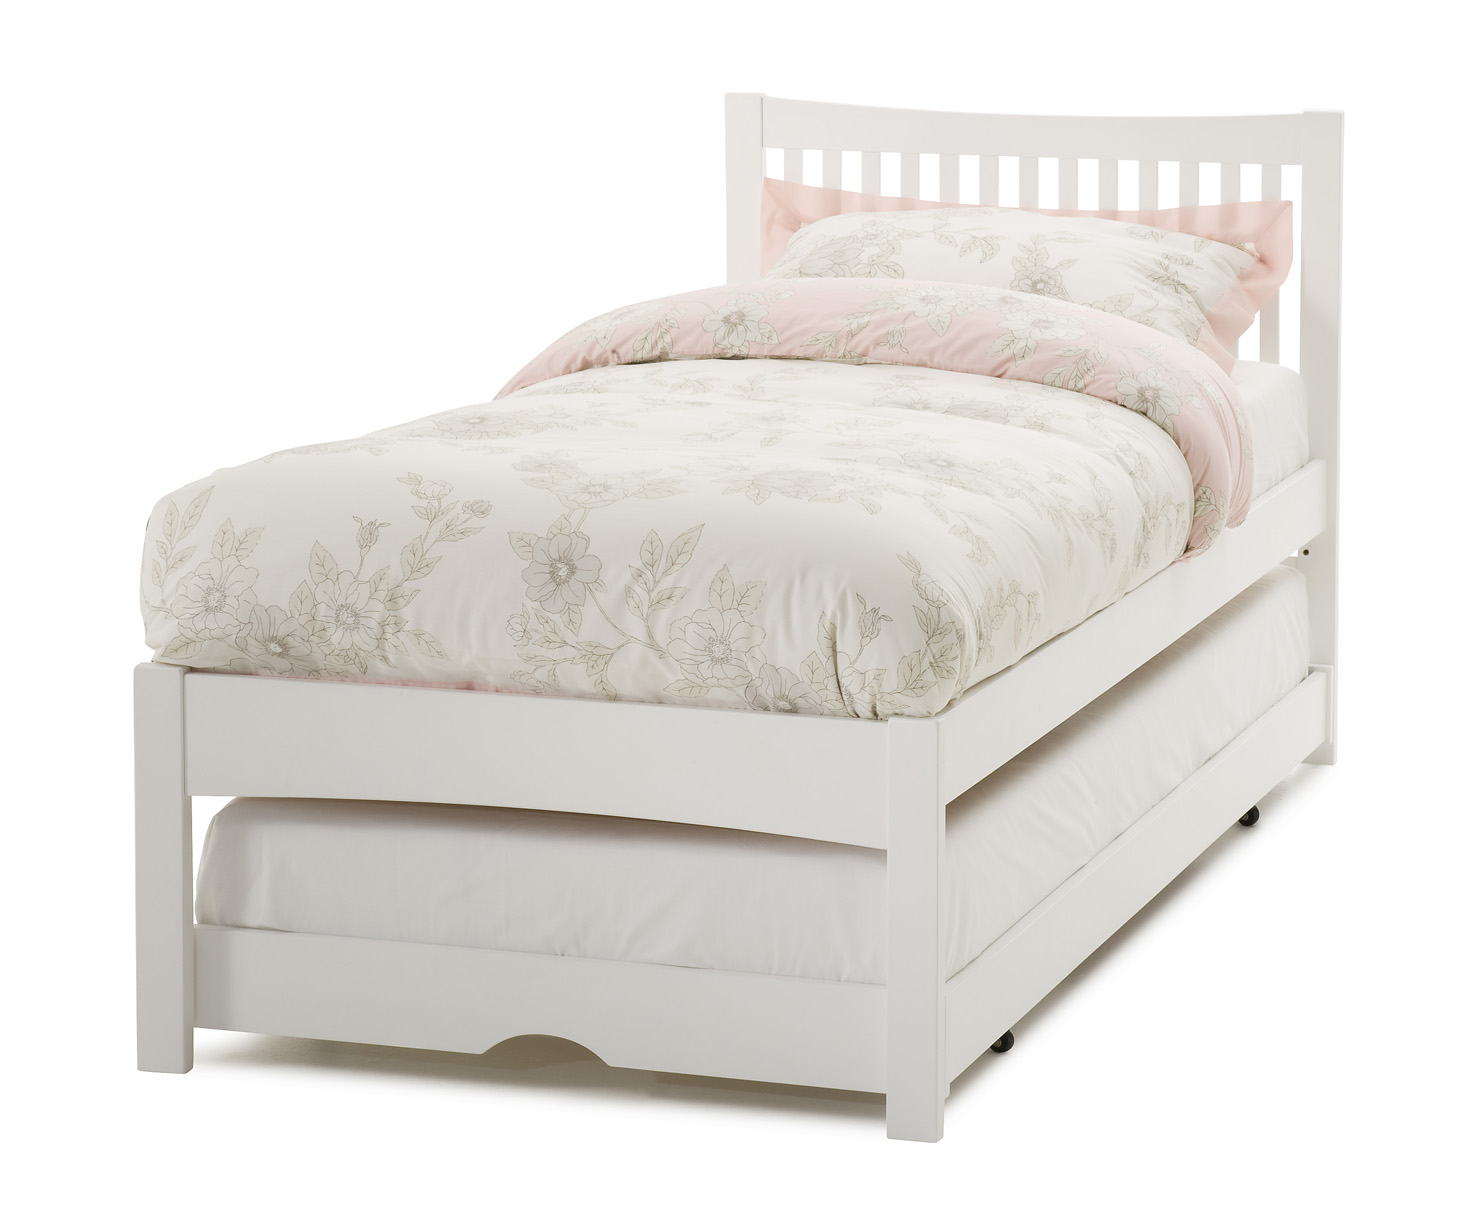 guest bed solutions ideas homesfeed